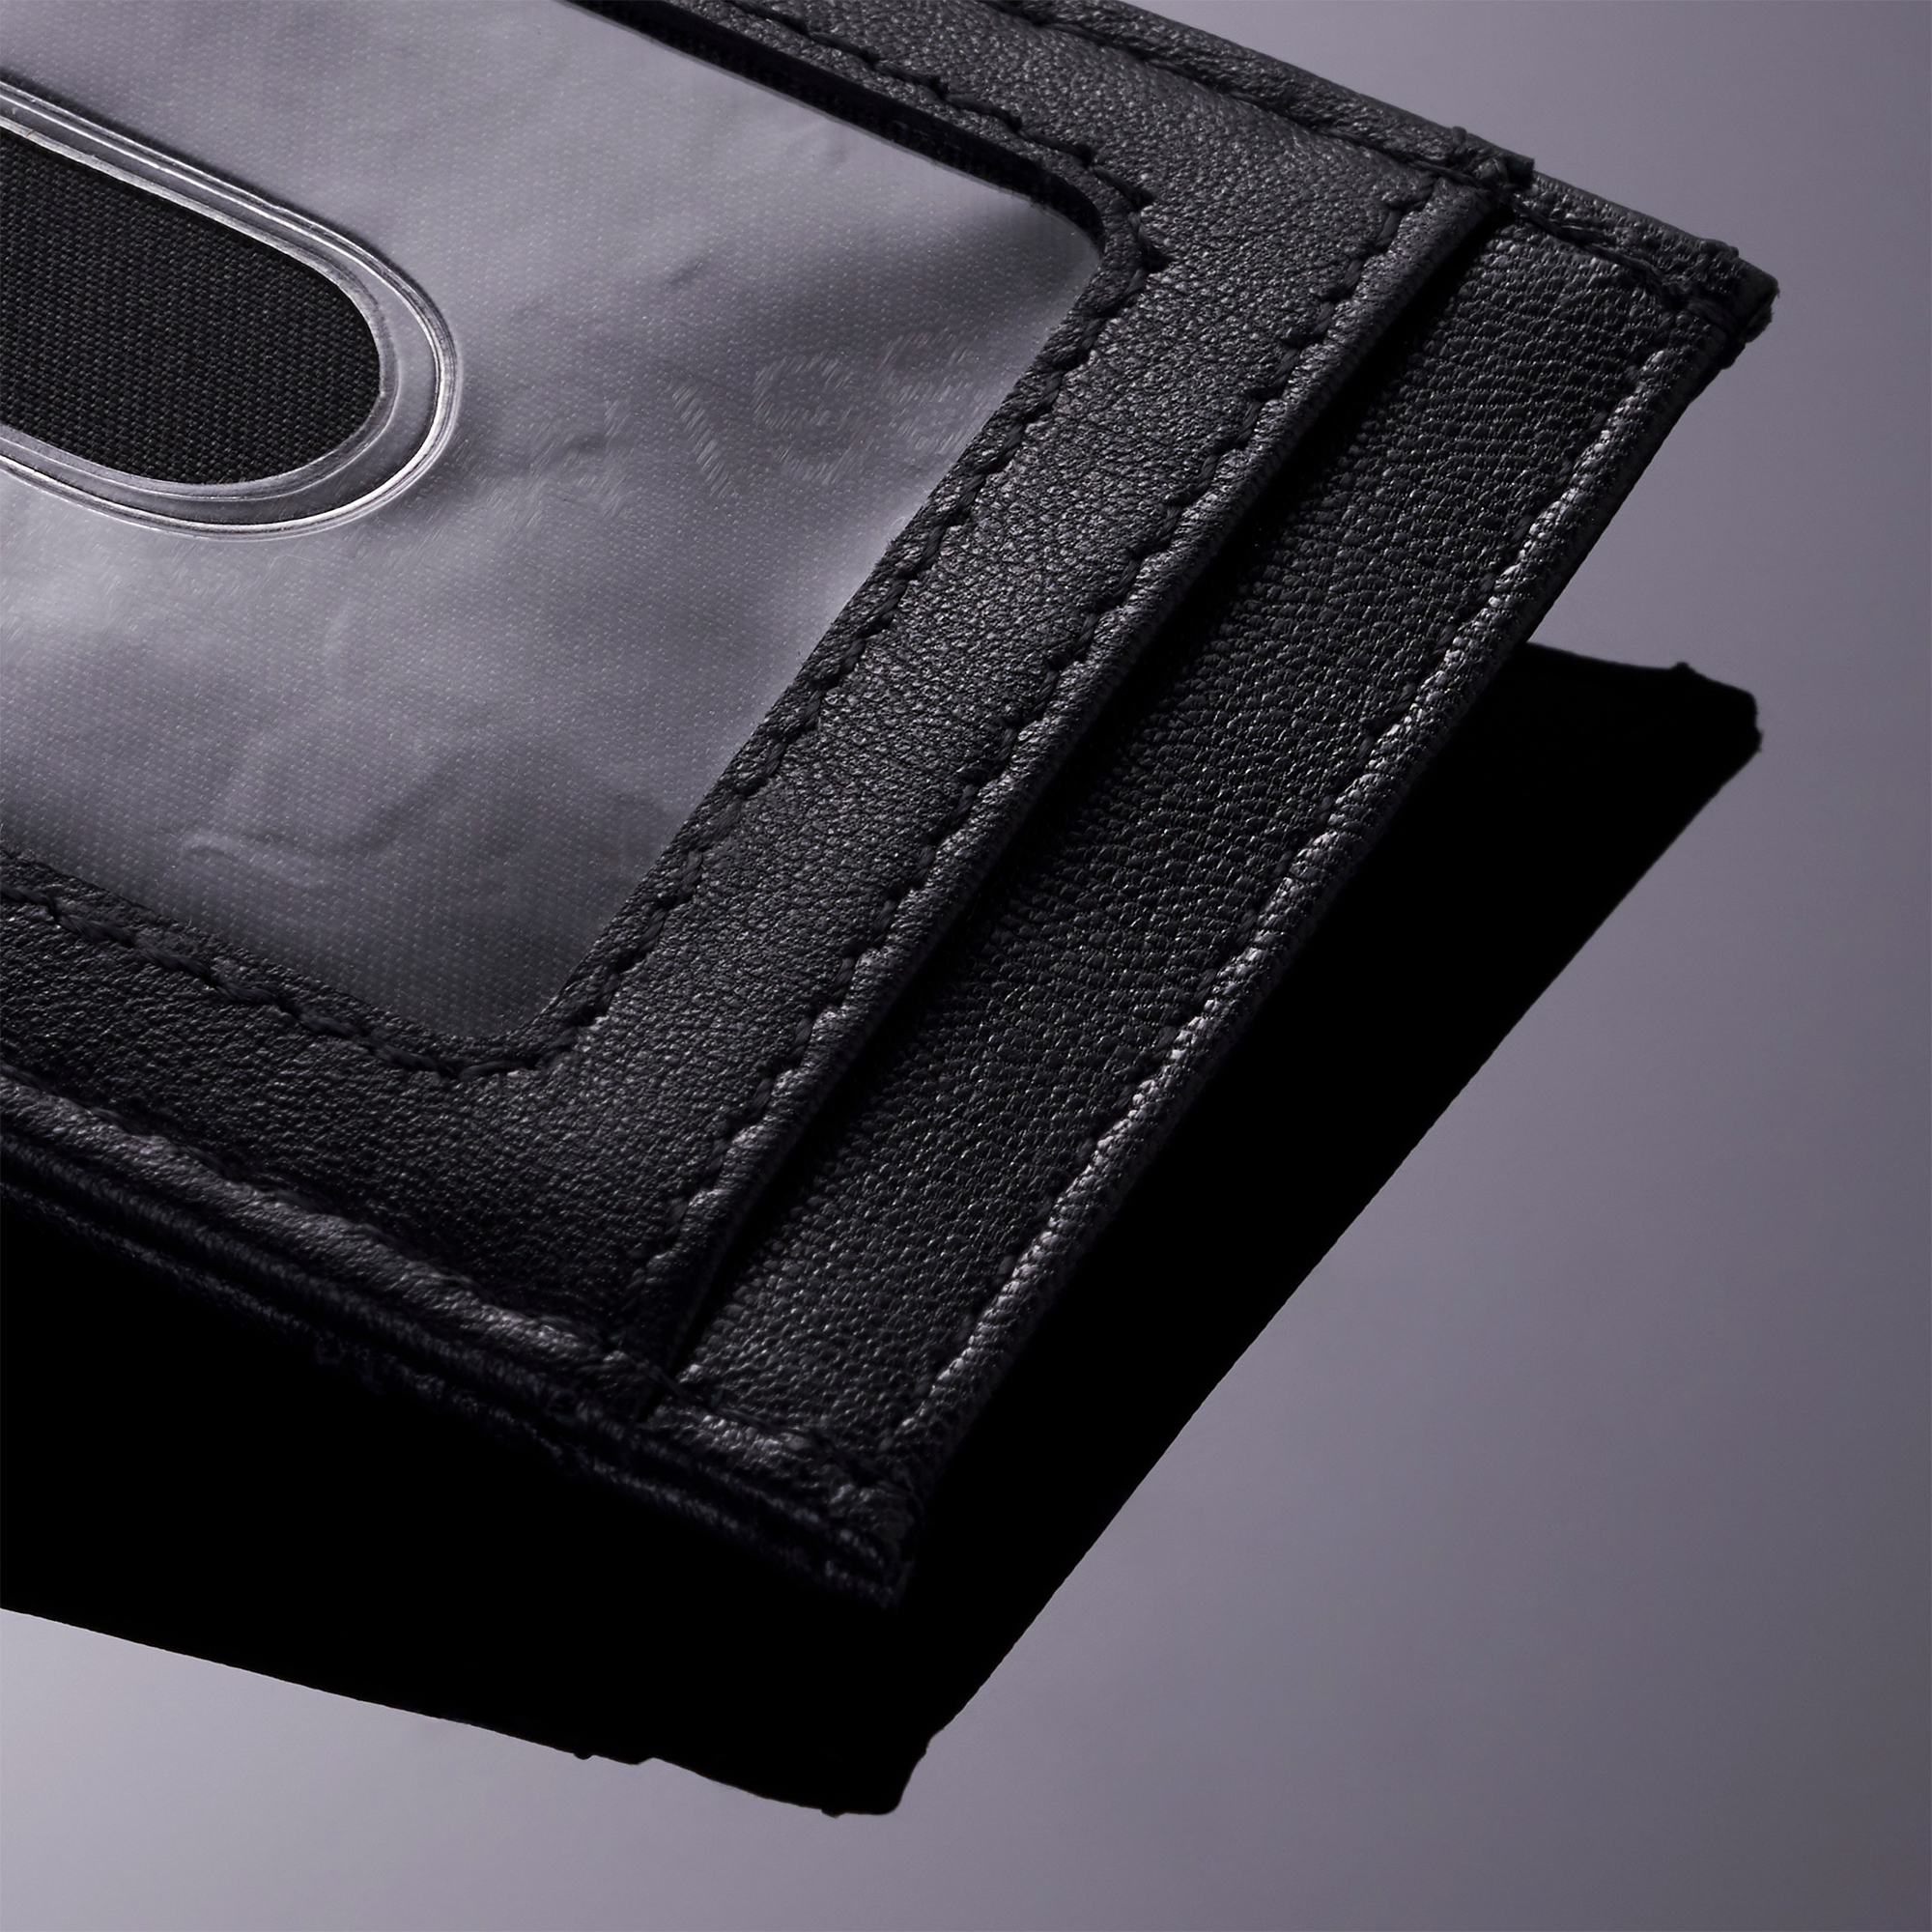 AlpineSwiss-Mens-Leather-Money-Clip-Magnet-Front-Pocket-Wallet-Slim-ID-Card-Case thumbnail 24